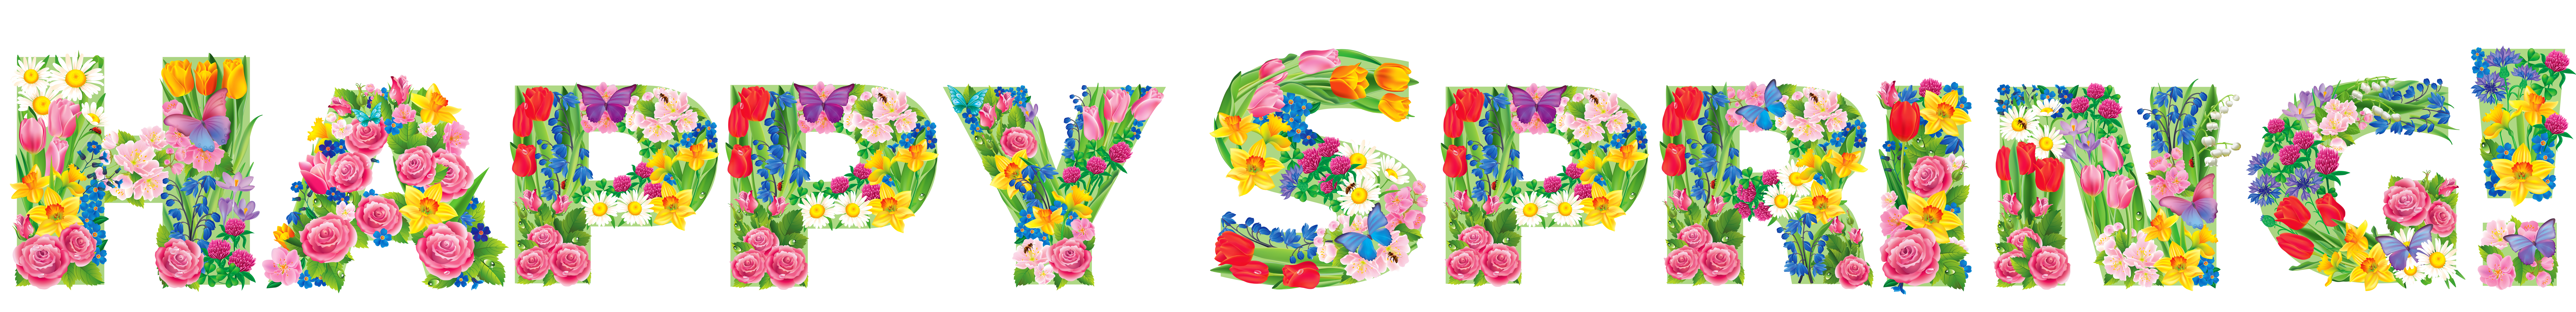 Happy spring png. Transparent clipart picture gallery